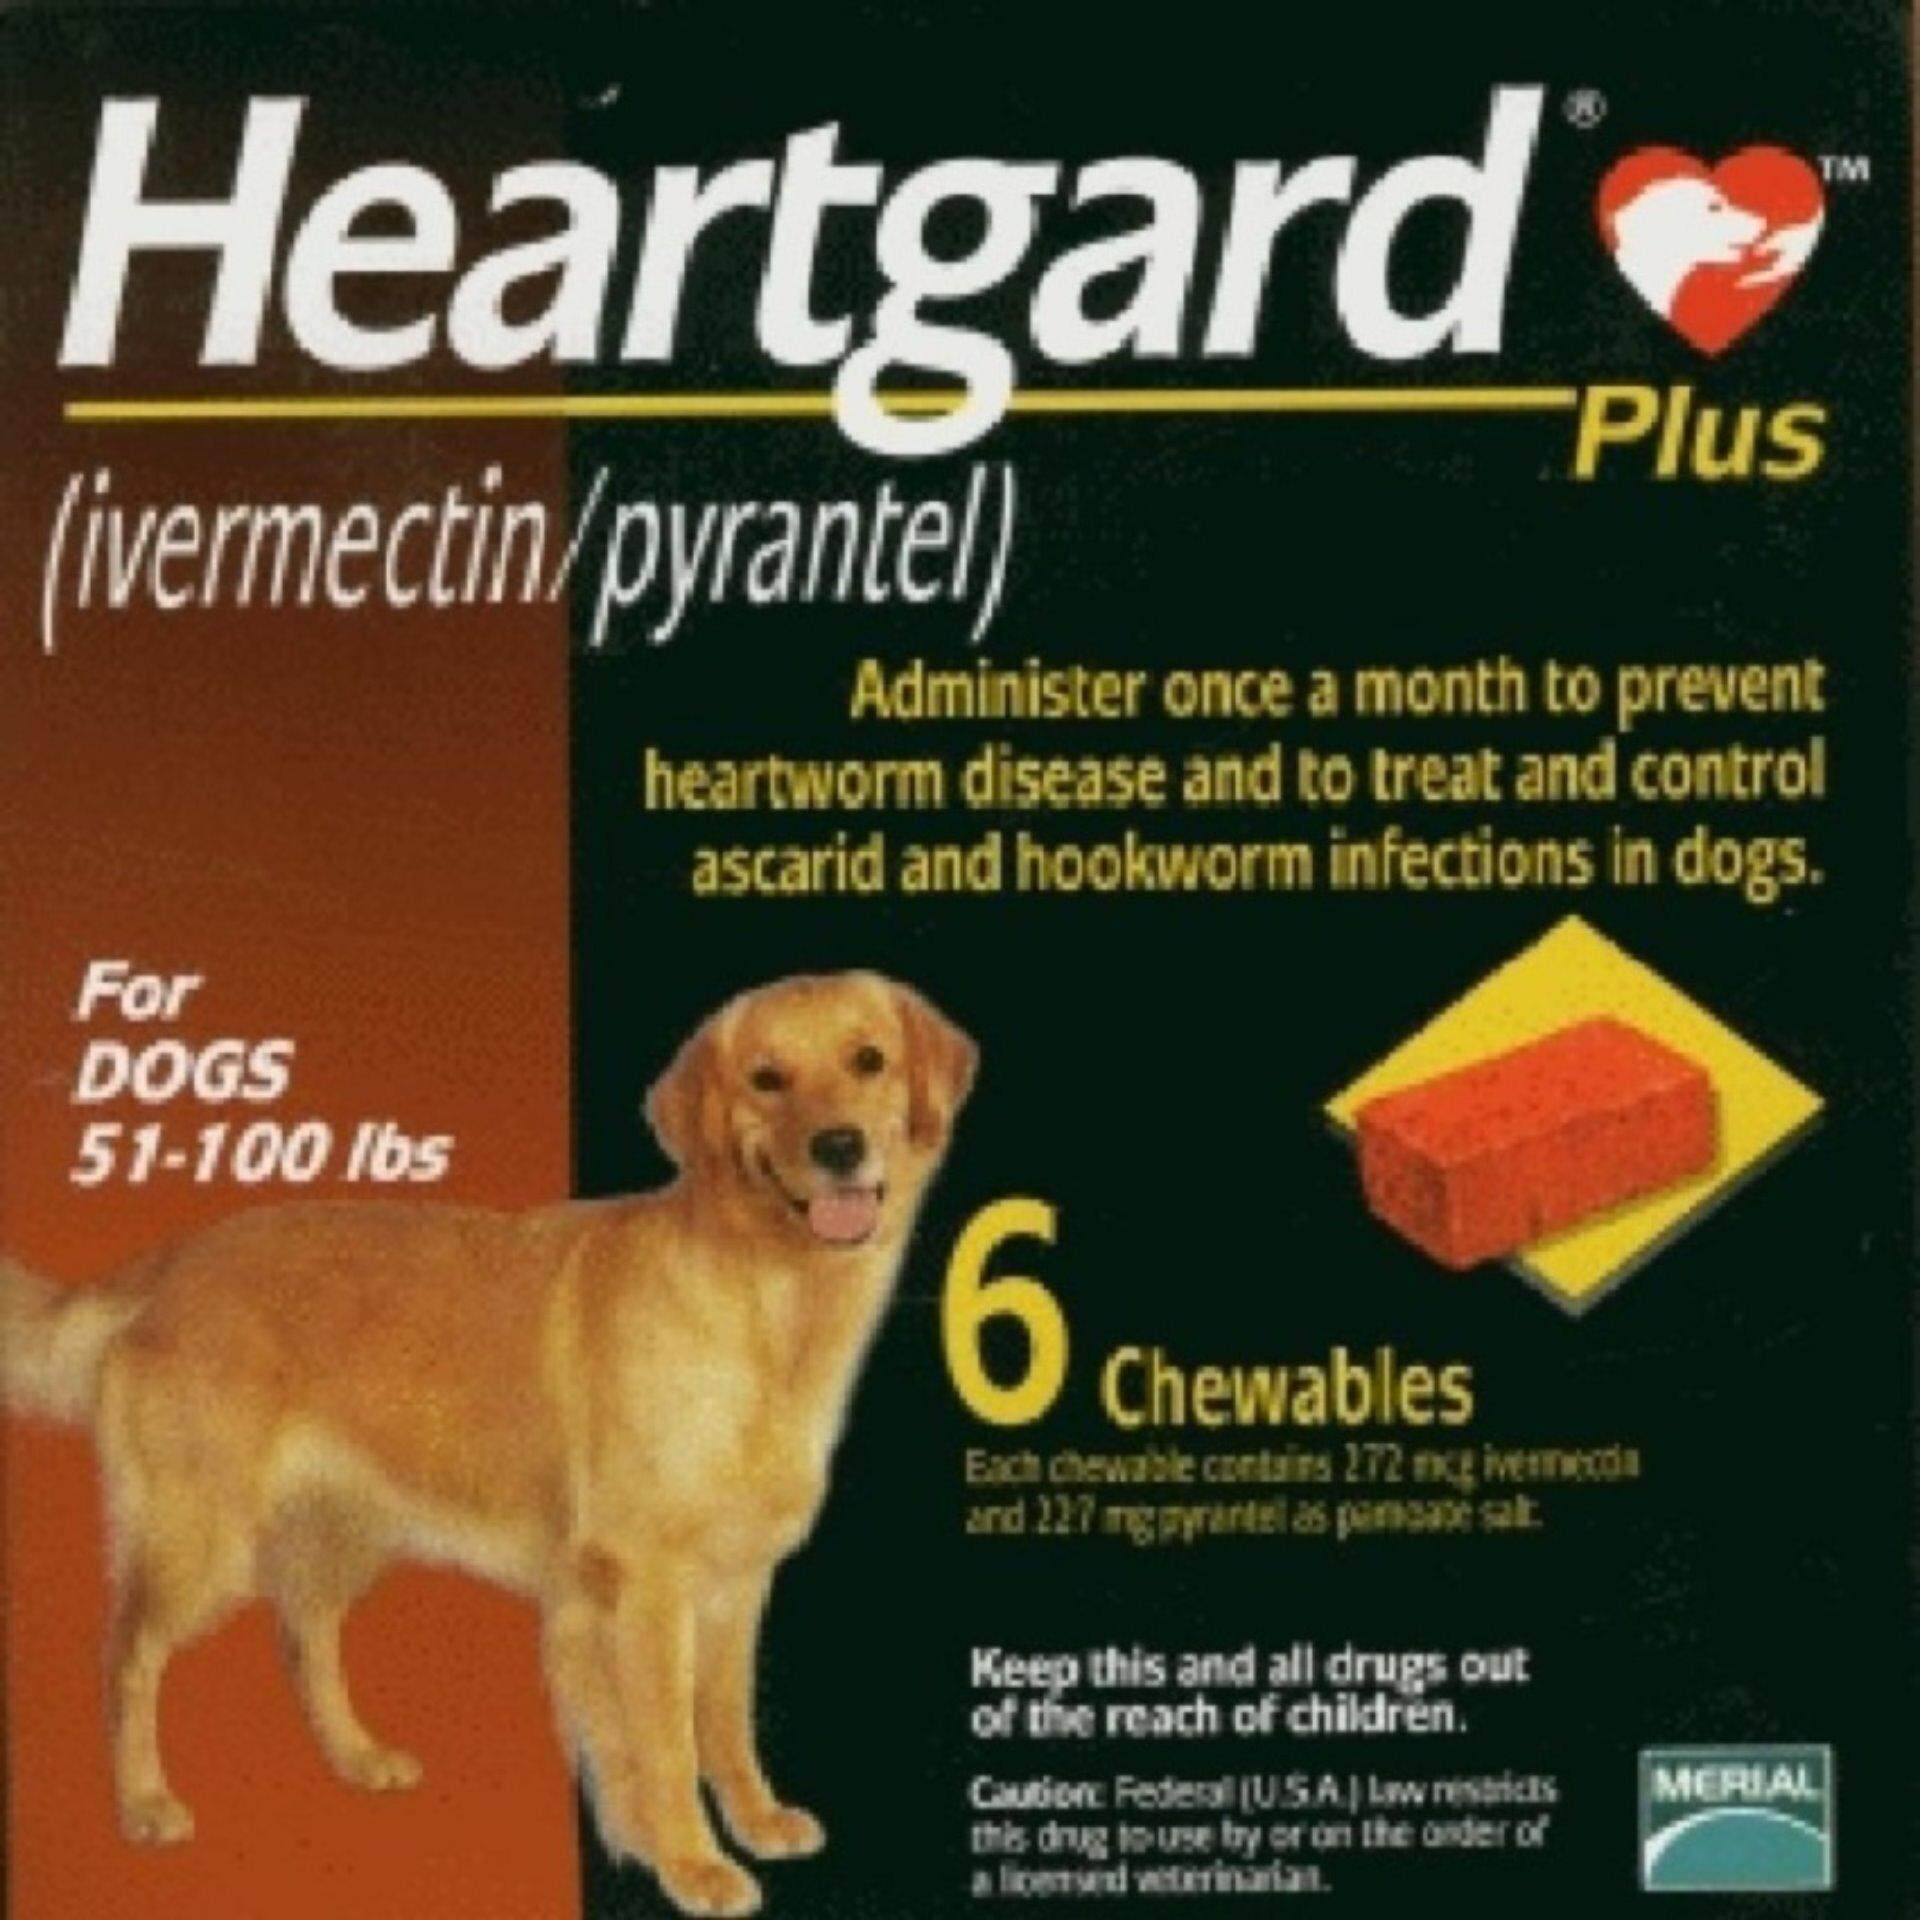 Heartgard Plus Chewables (Brown) 51-100 lbs